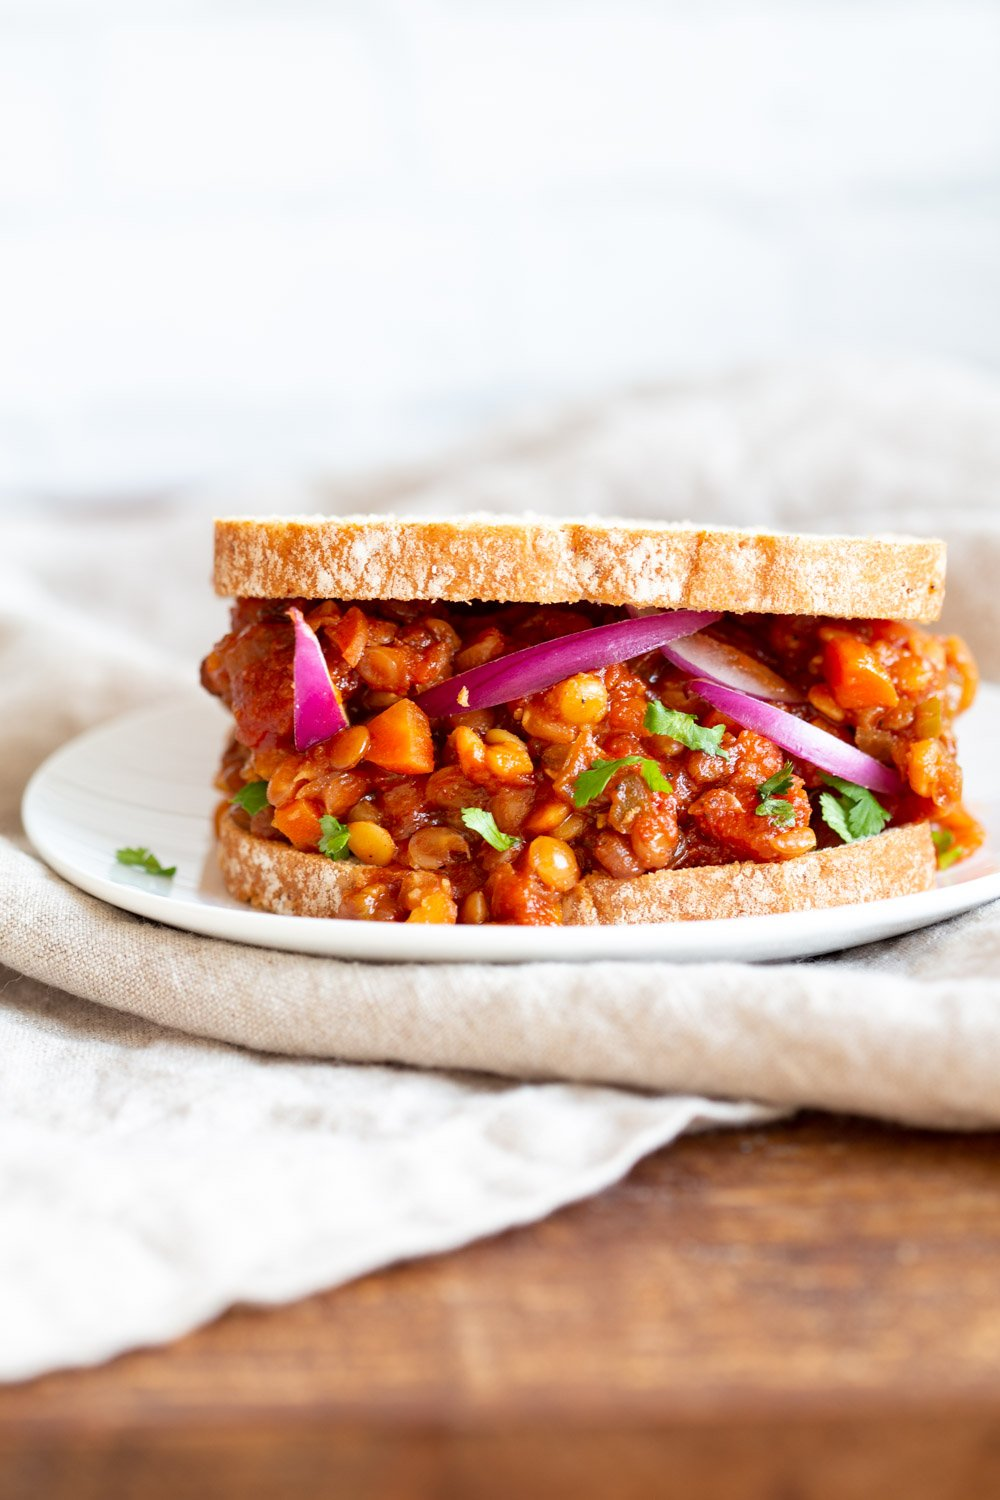 Our Vegan Lentil Sloppy joes serves in a sandwich with onions